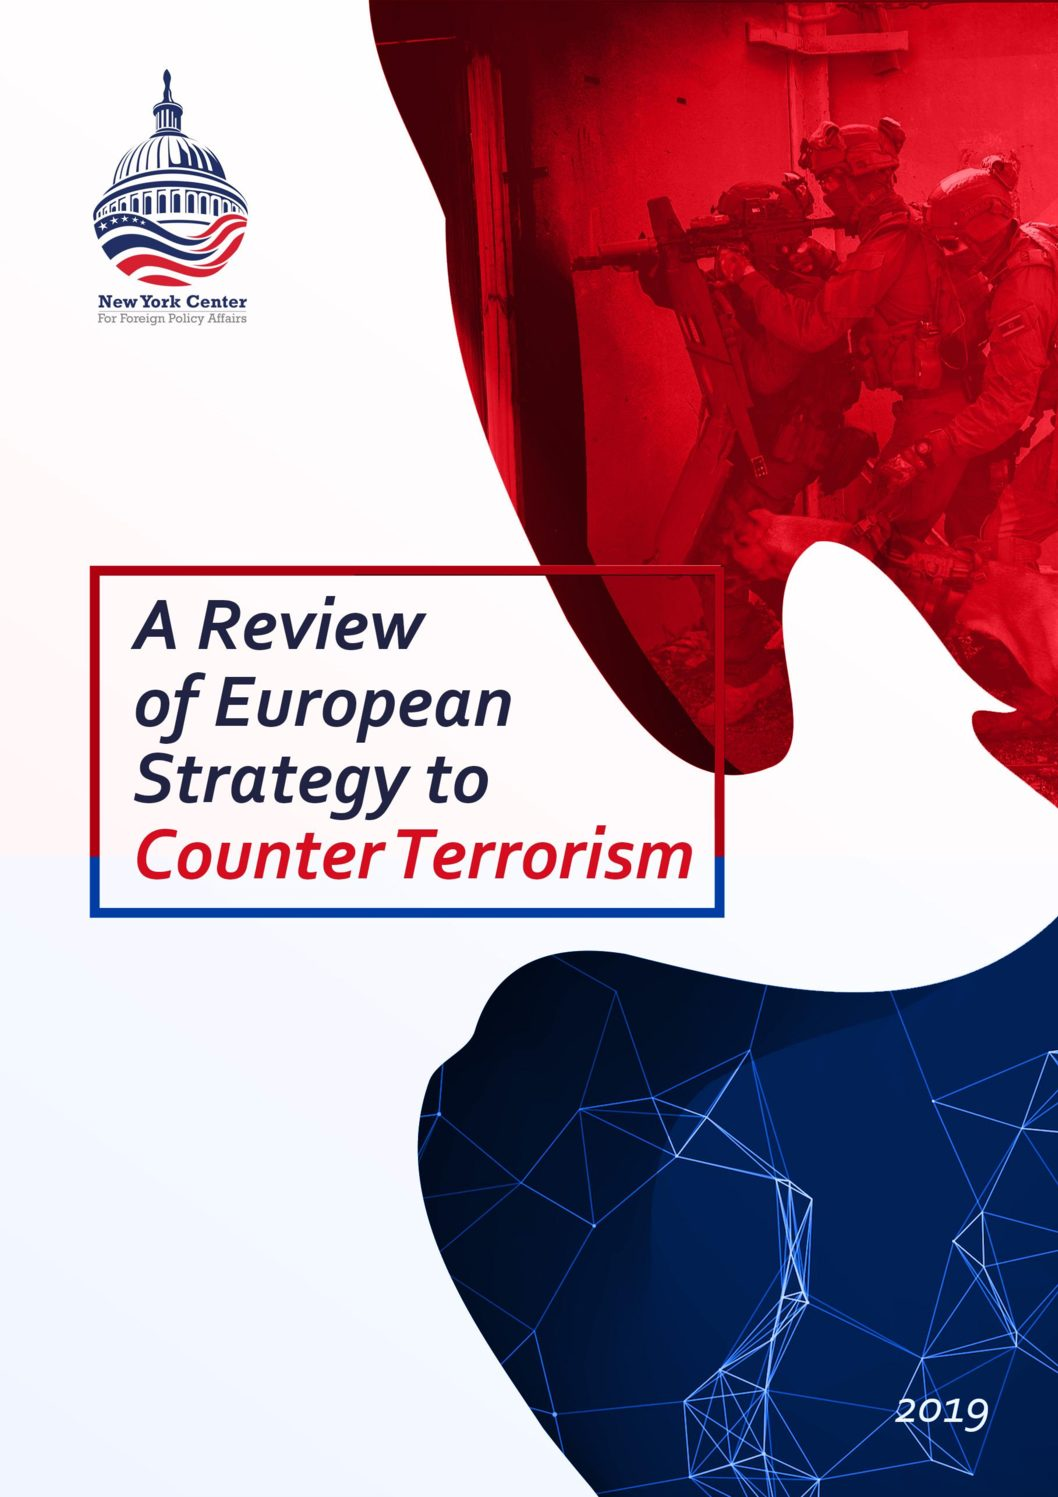 A Review of European Strategy to Counter Terrorism